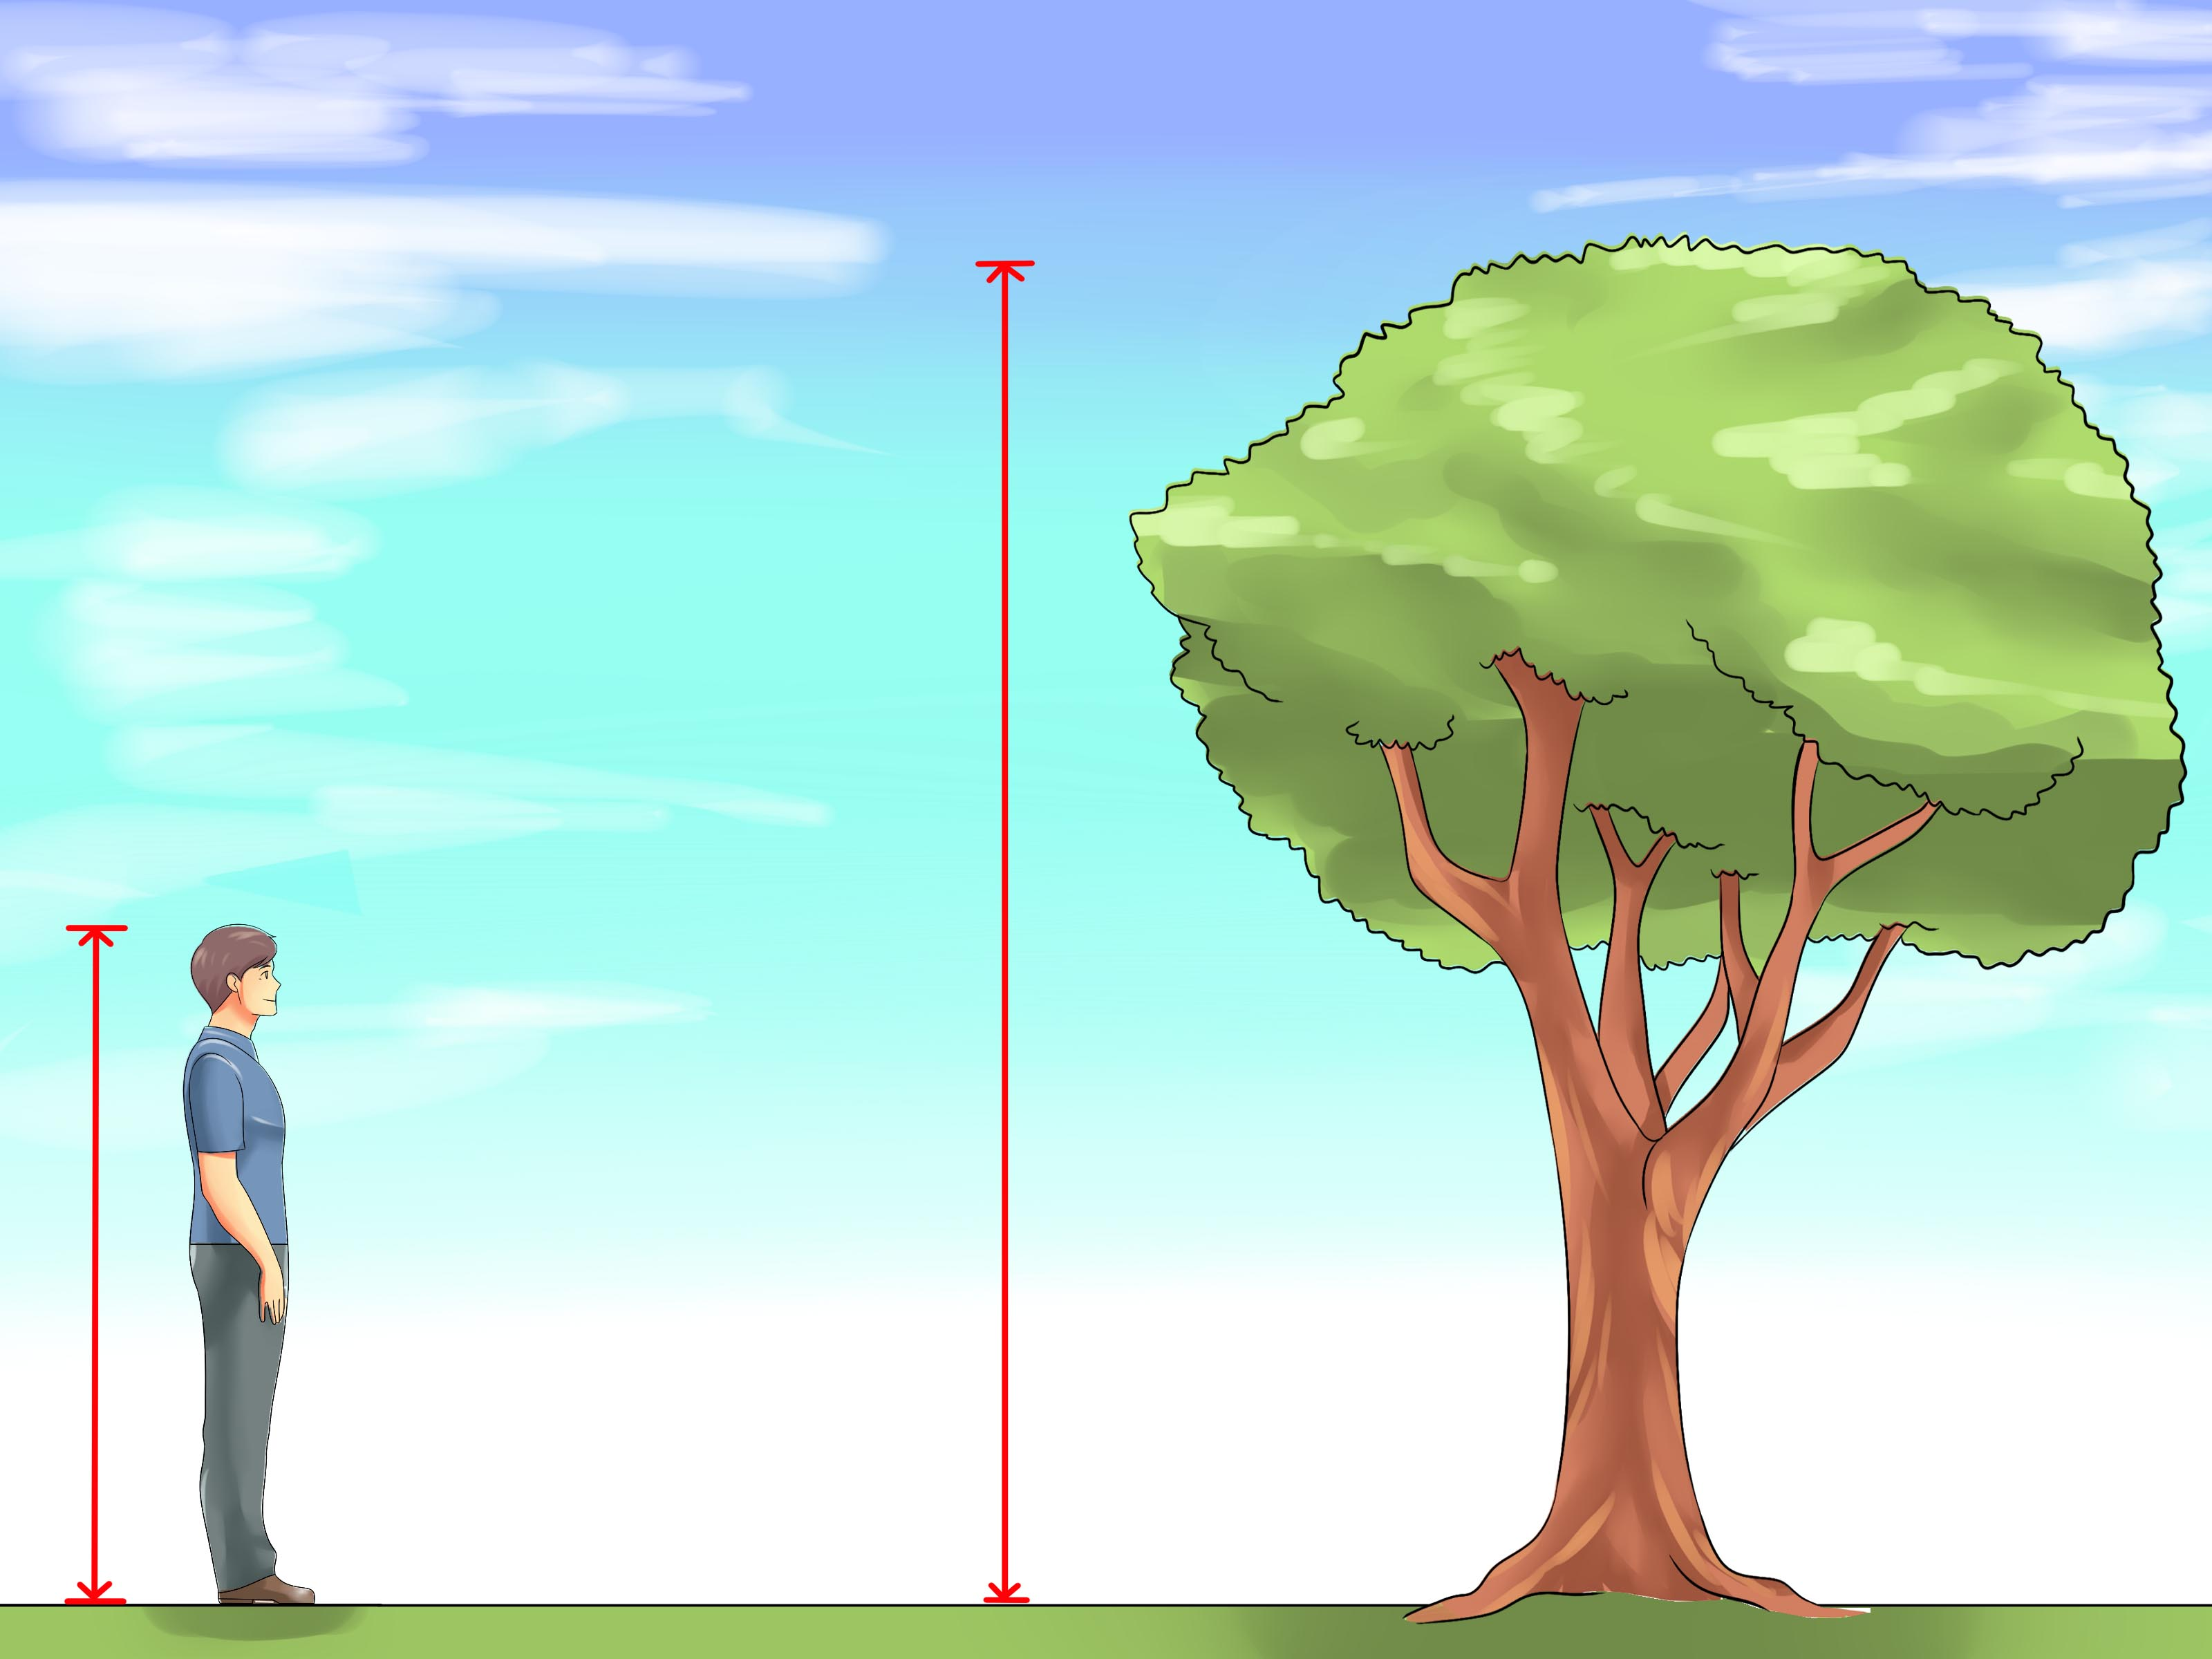 5 5 In Meters 4 Ways To Measure The Height Of A Tree Wikihow